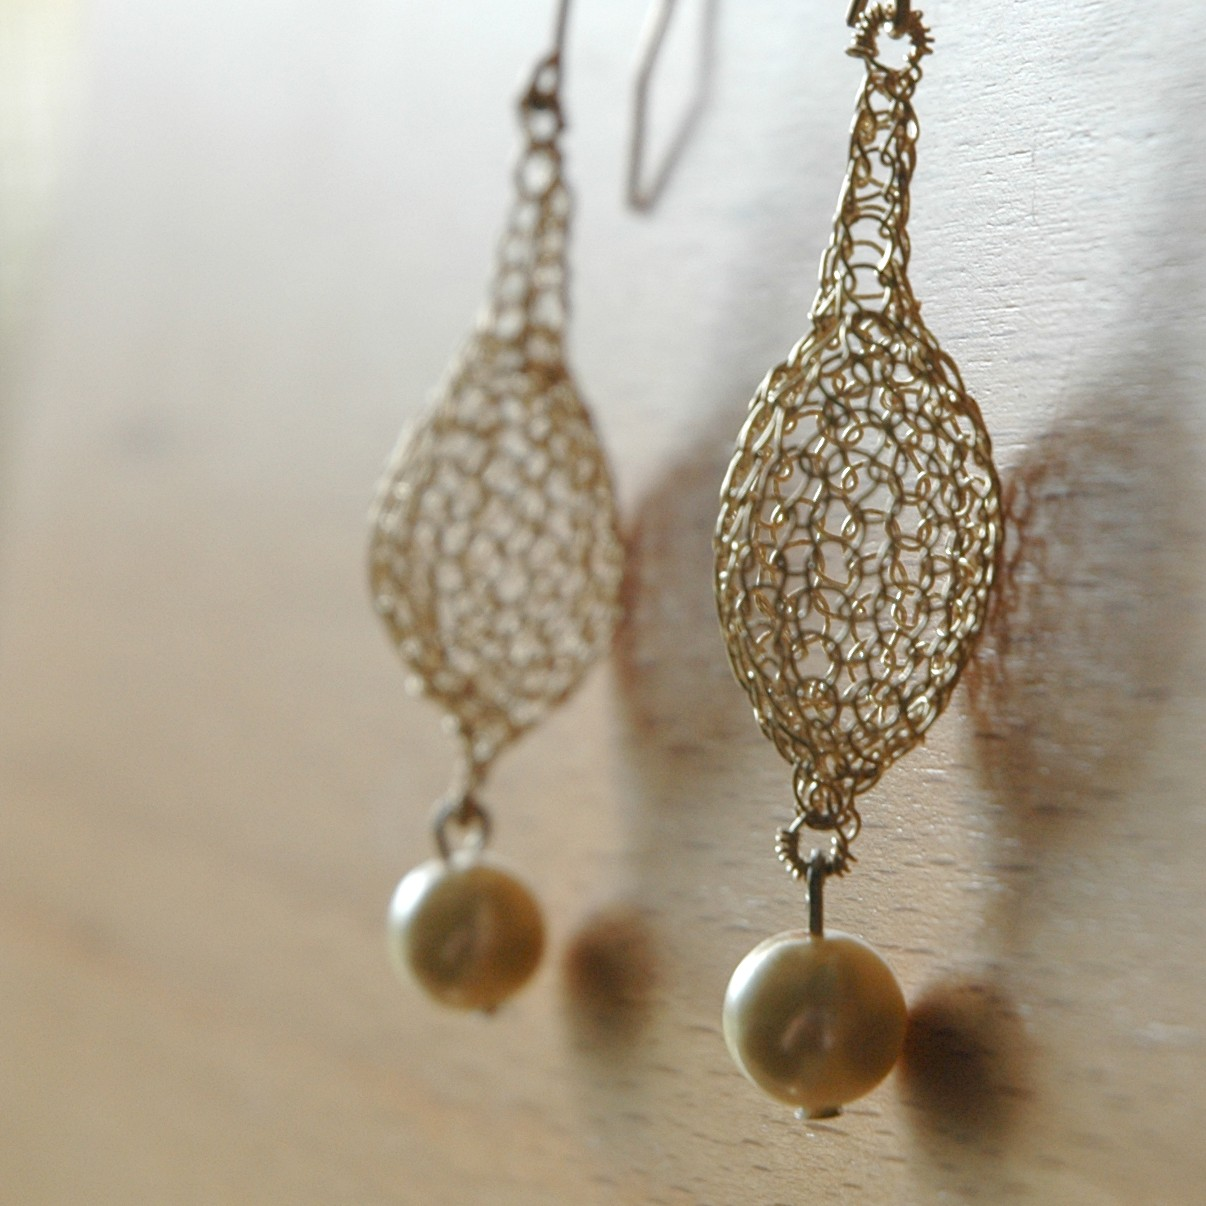 Crochet Earrings : ... Jewelry: YooLaGoldenDrop Earrings, Crocheted Wire Jewelry Tutorial